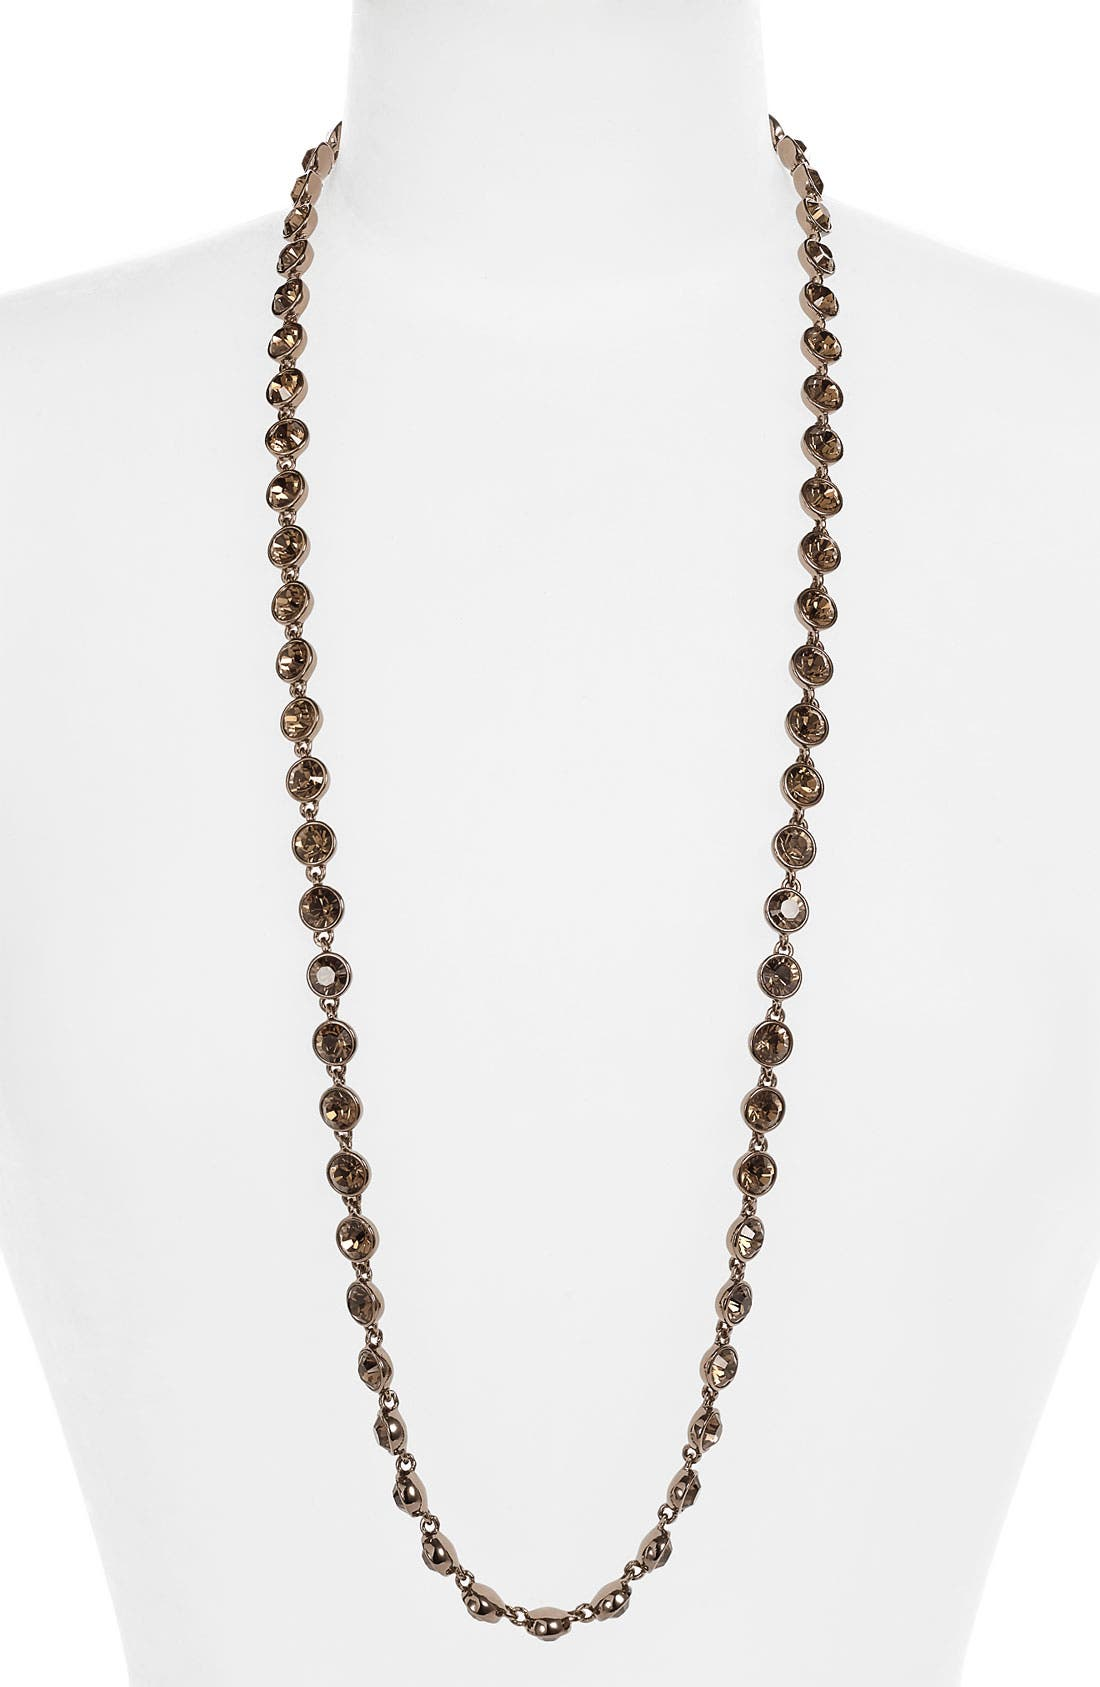 Alternate Image 1 Selected - Givenchy Crystal Station Long Necklace (Nordstrom Exclusive)